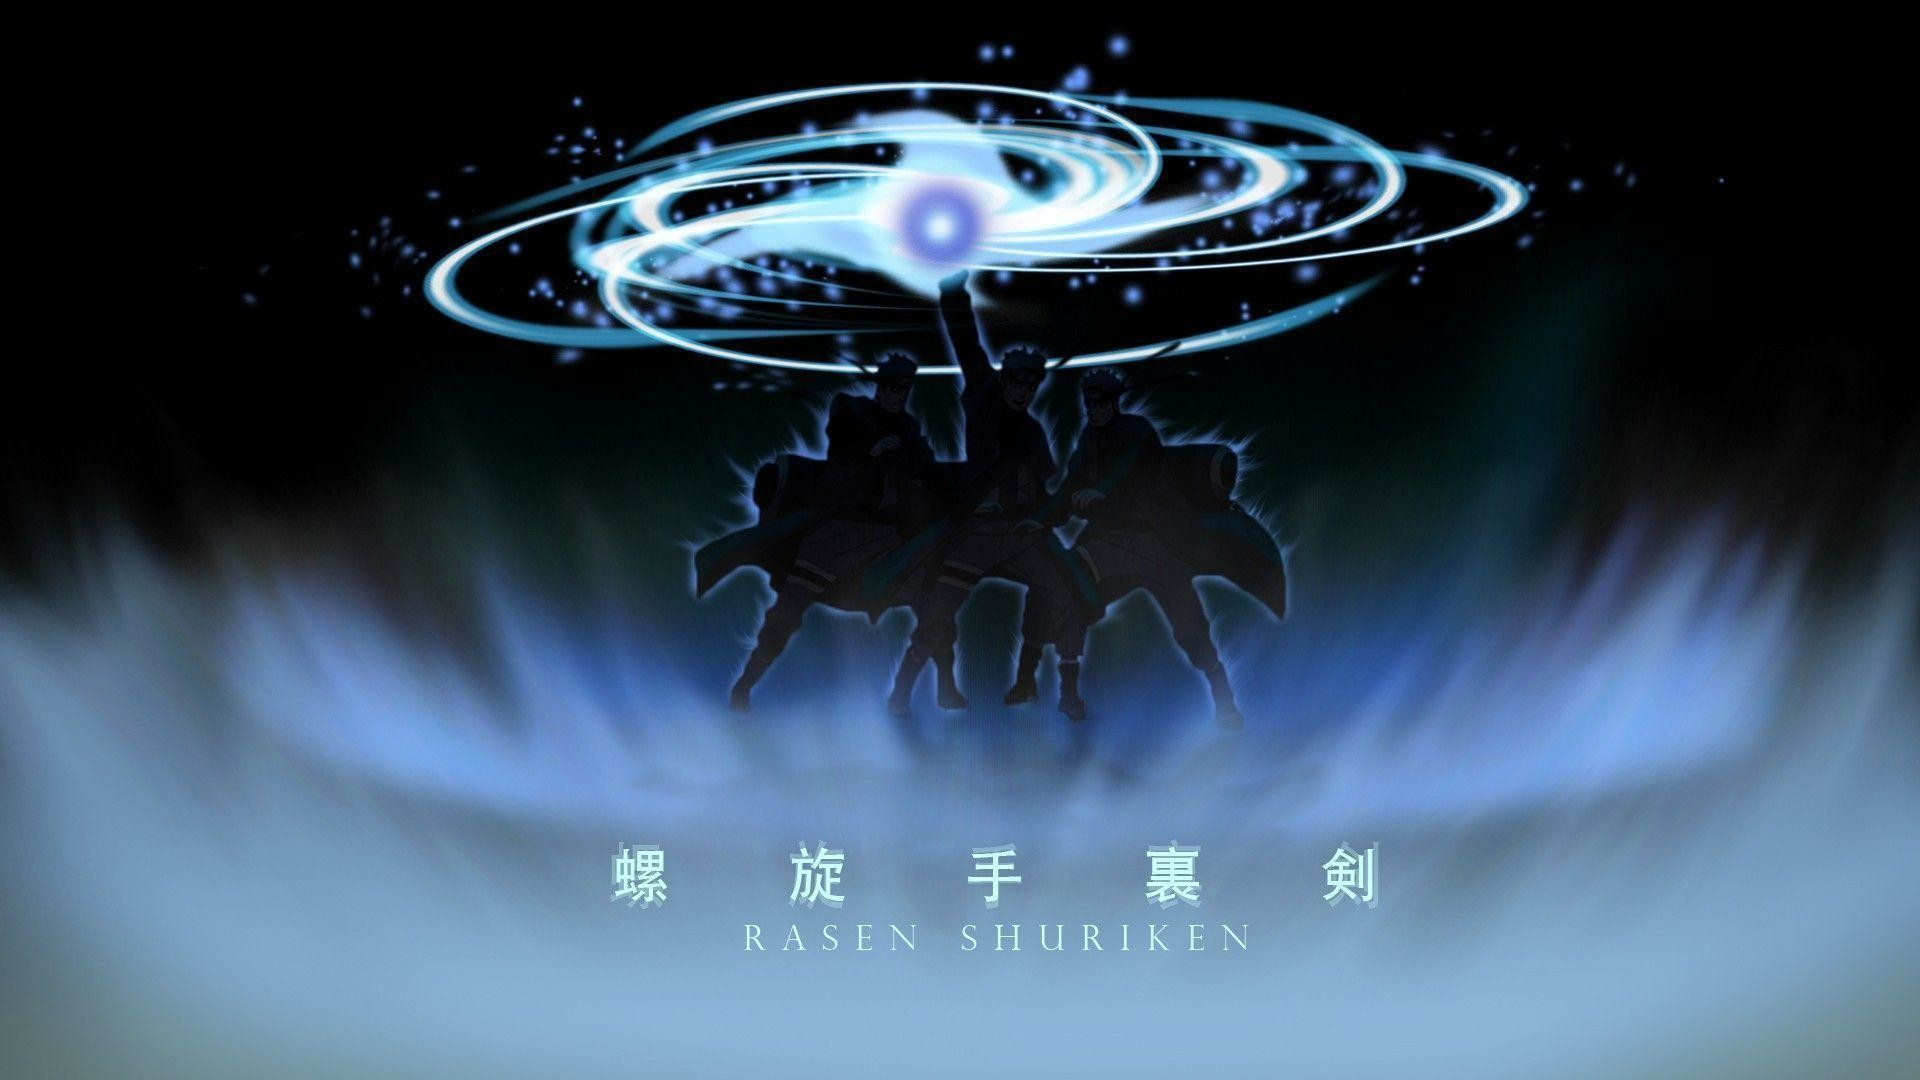 1920x1080 Image - Naruto-Rasengan-Shuriken-Pictures-HD-Wallpaper.jpg .